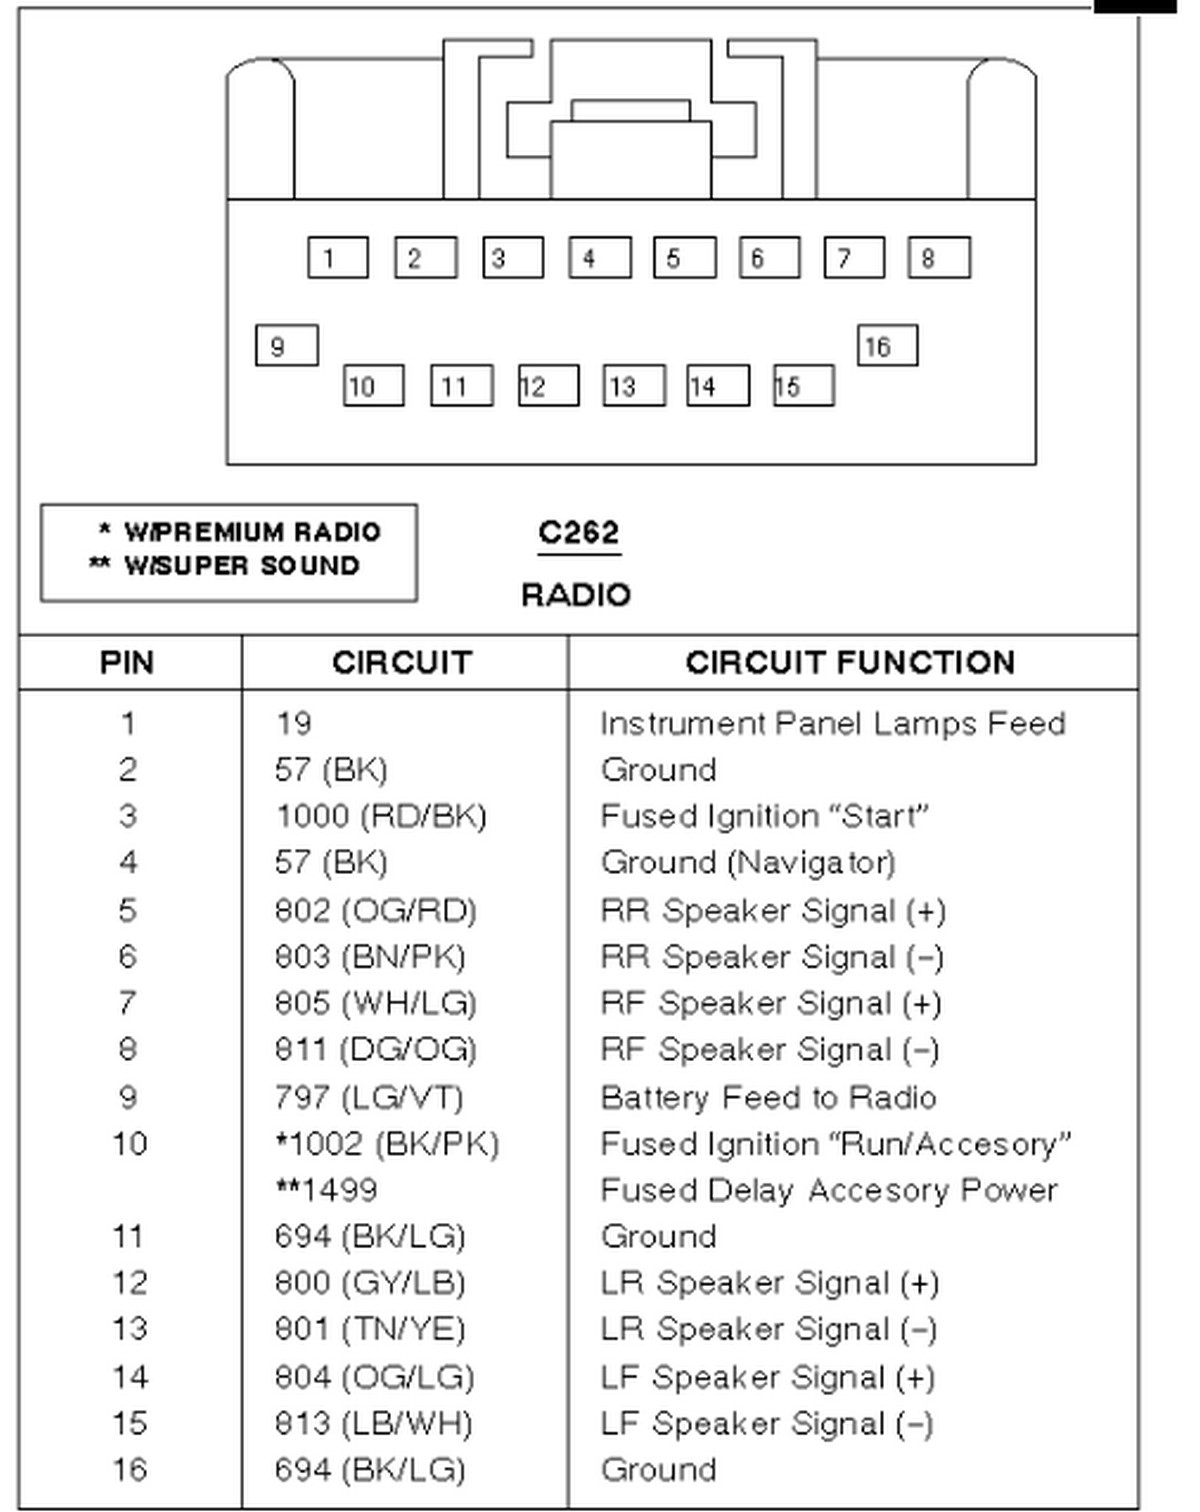 Expedition Dvd Wiring Diagram - Diagram Design Sources series-close -  series-close.paoloemartina.itdiagram database - paoloemartina.it